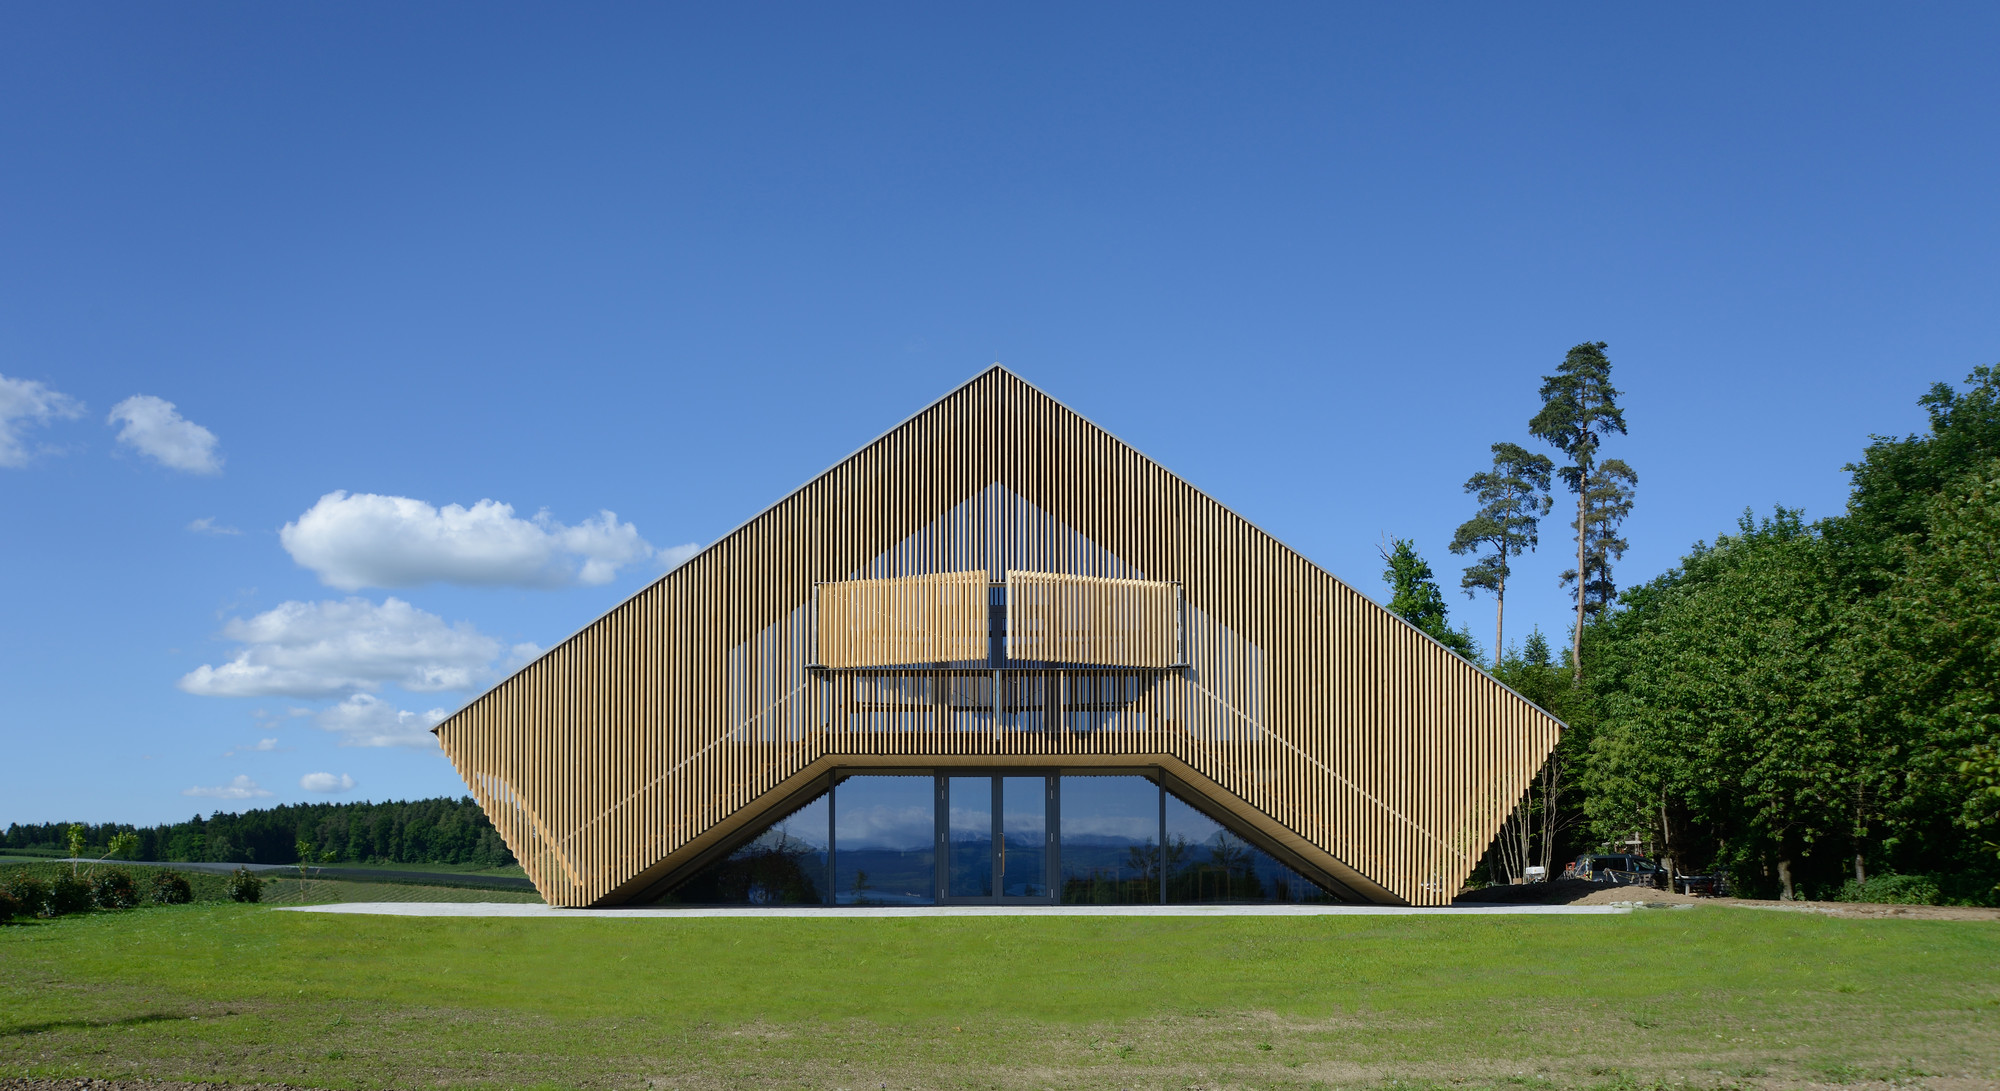 Wood Architecture: Gallery Of Wood Design & Building Magazine Announces